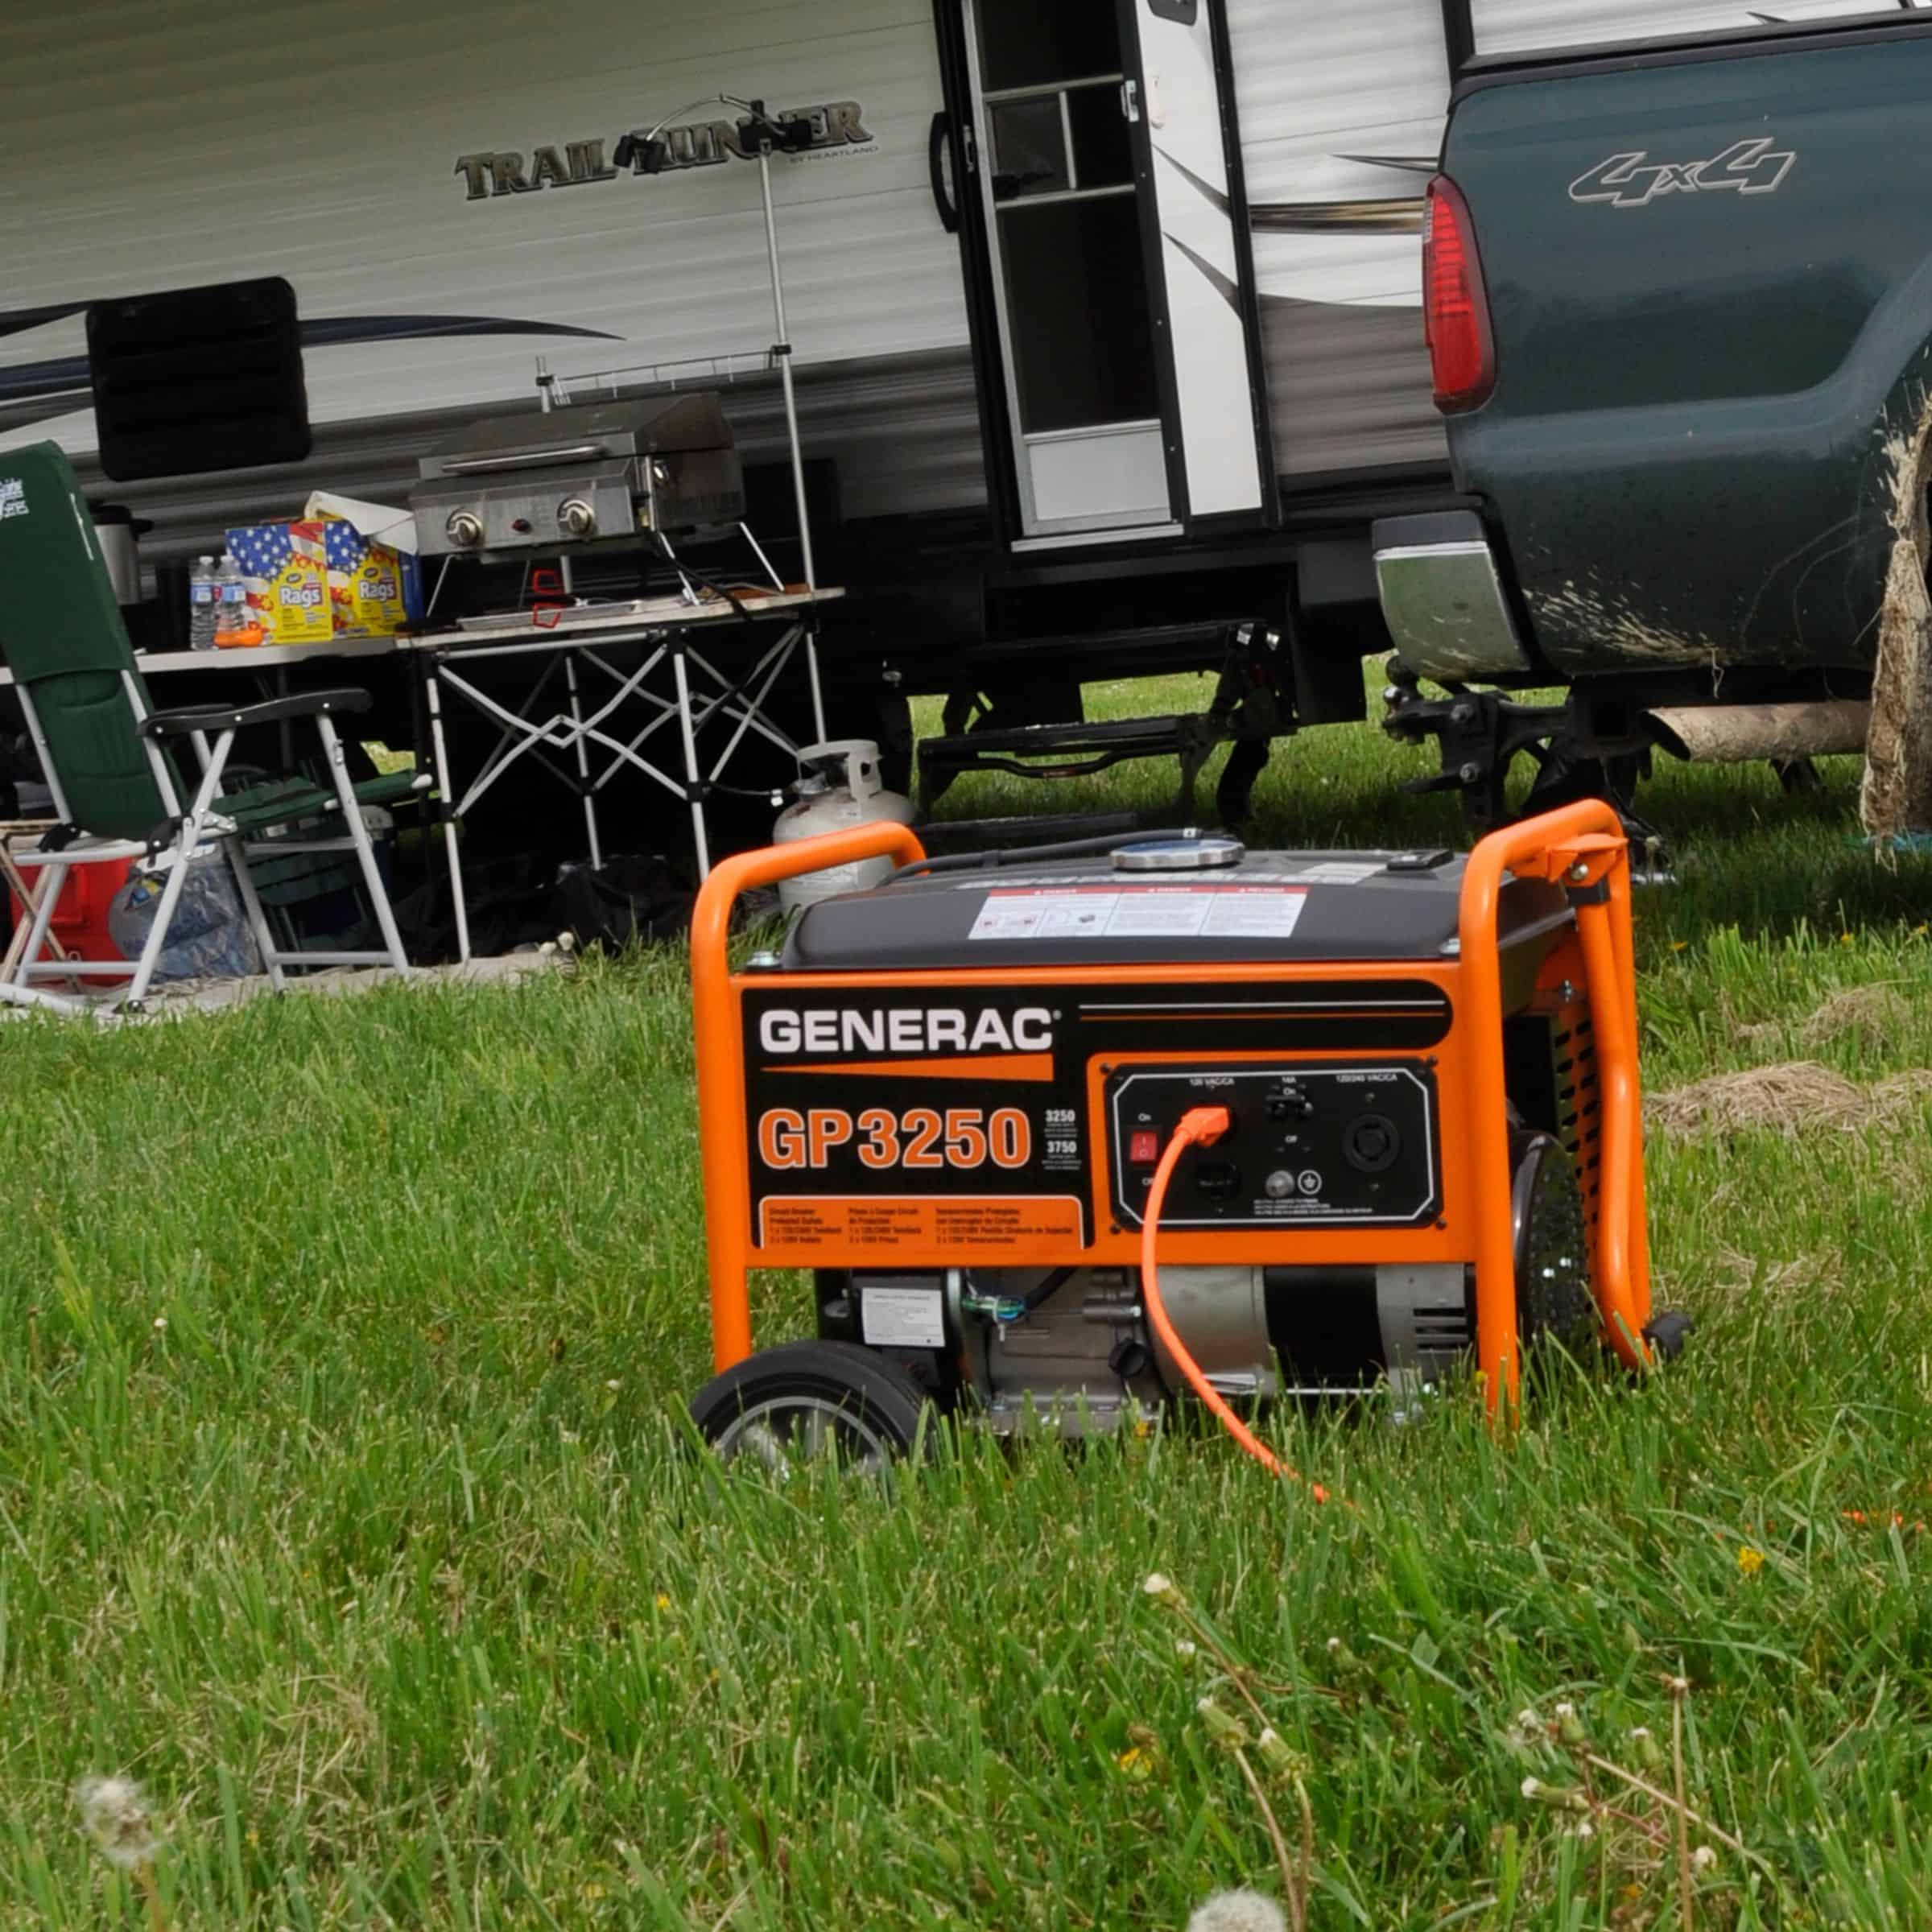 GP 3250 Watt Portable Generator in front of RV